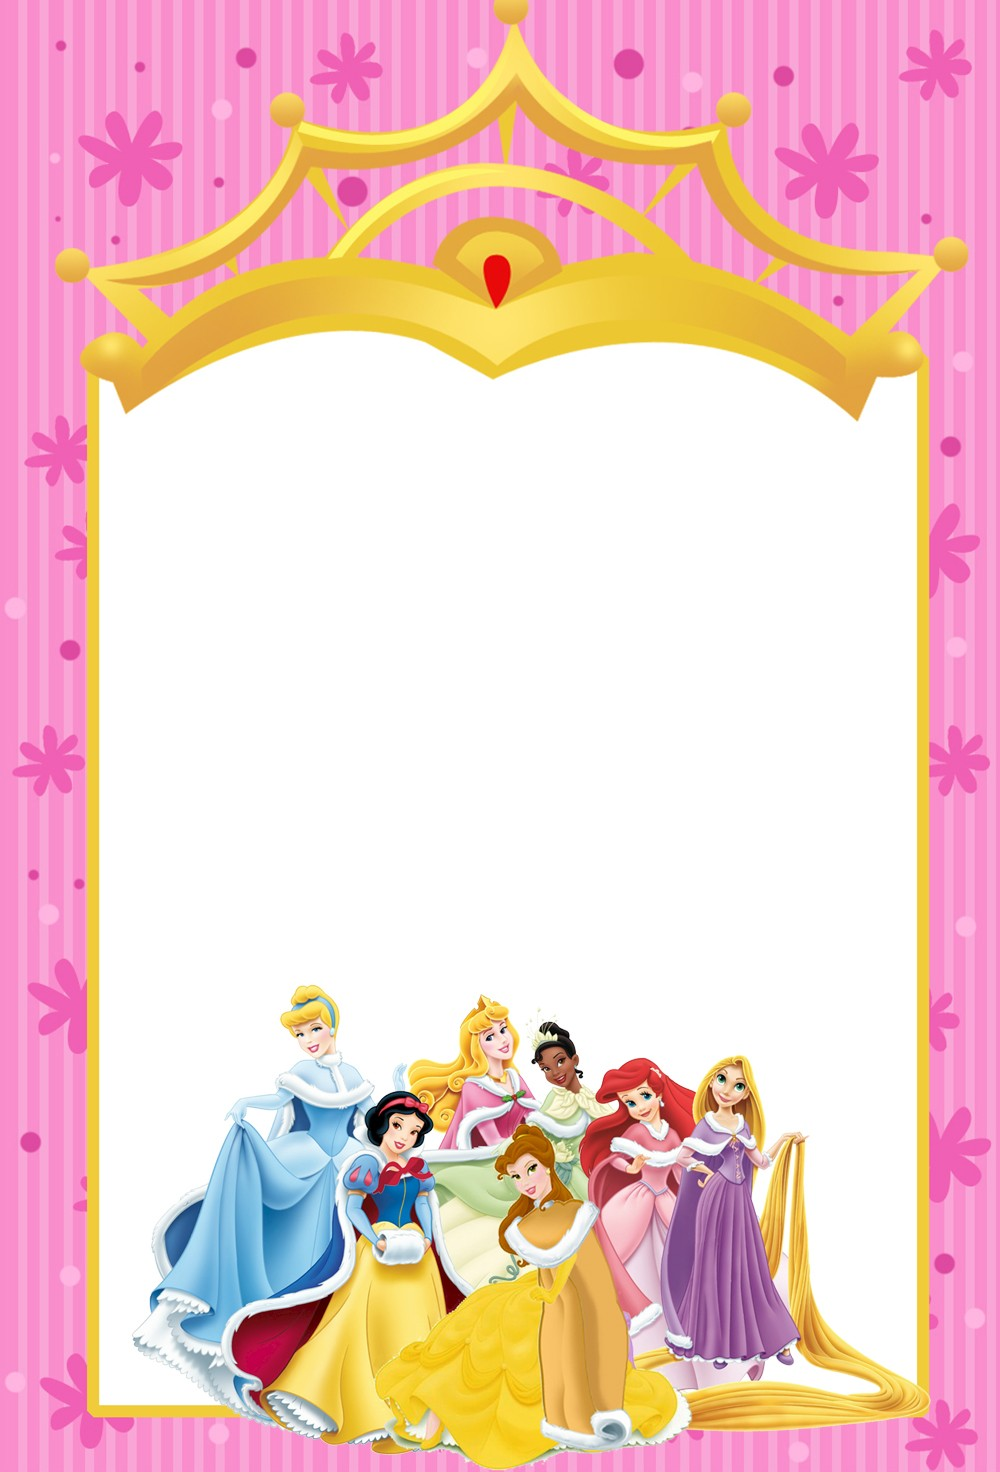 princess birthday invitation templates free ; disney-princess-party-invitations-with-a-adorable-invitations-specially-designed-for-your-Party-Invitation-Templates-8